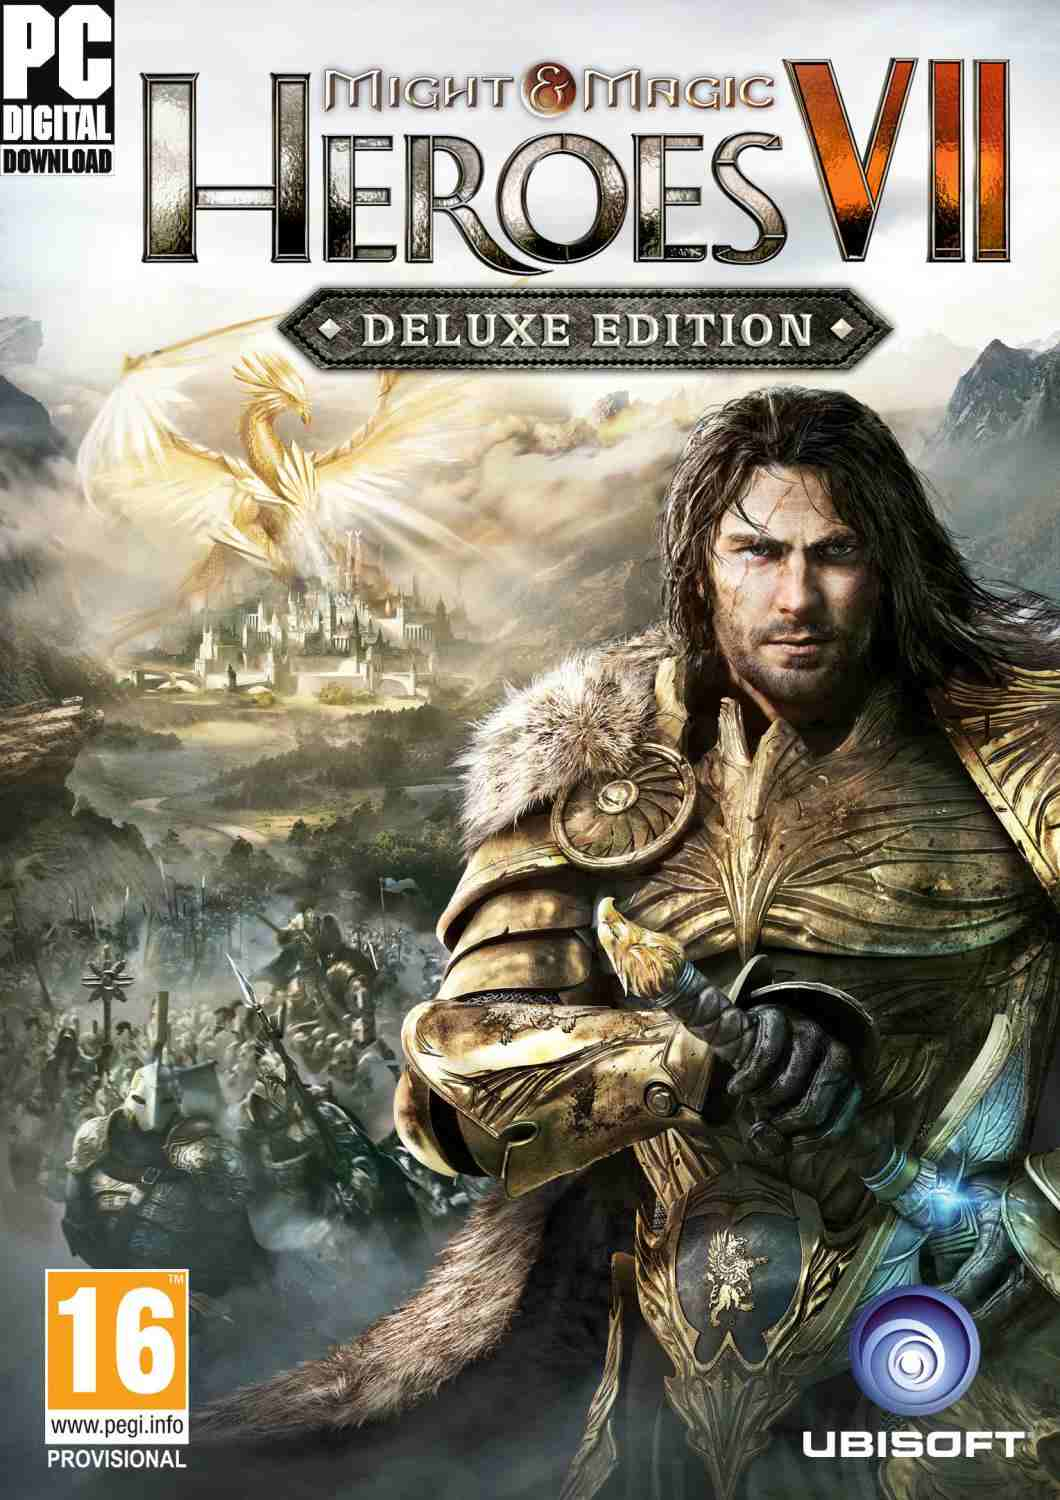 Герои меча и магии 7 / Might and Magic Heroes VII: Deluxe Edition [v 1.5](2015) PC